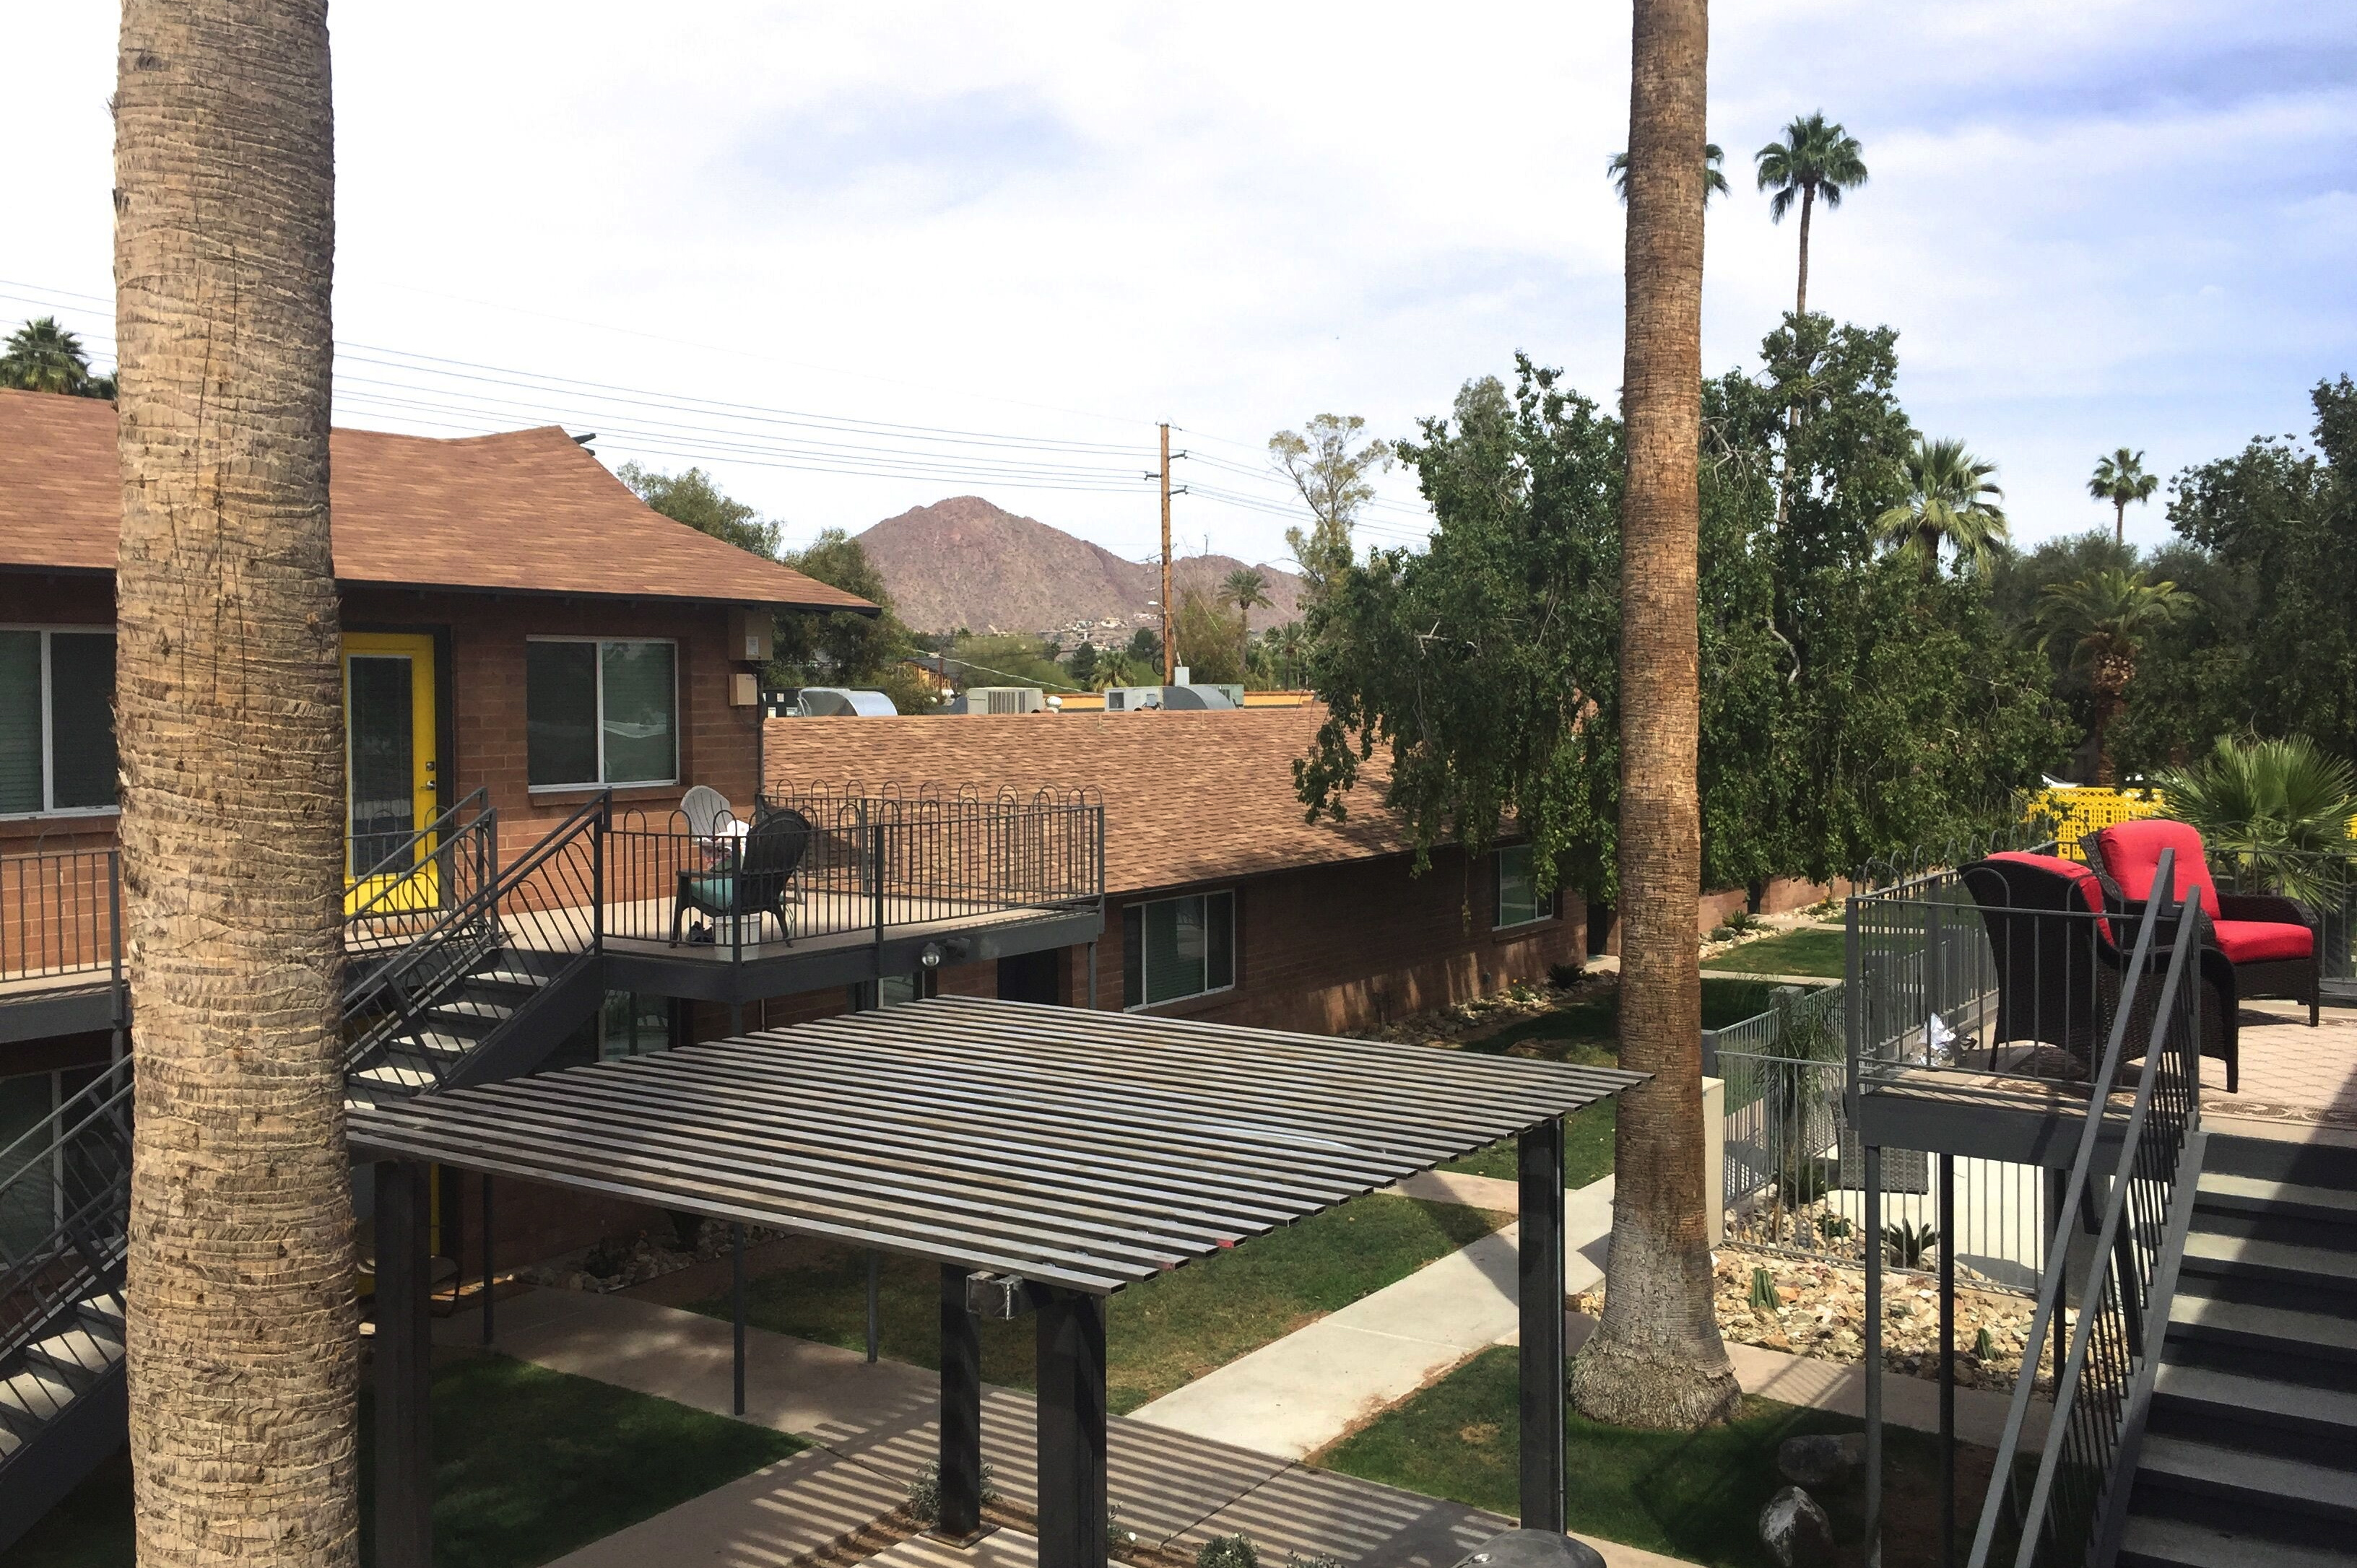 3234 N 38th St, Phoenix, AZ 85018 | Trinity Arcadia Apartments